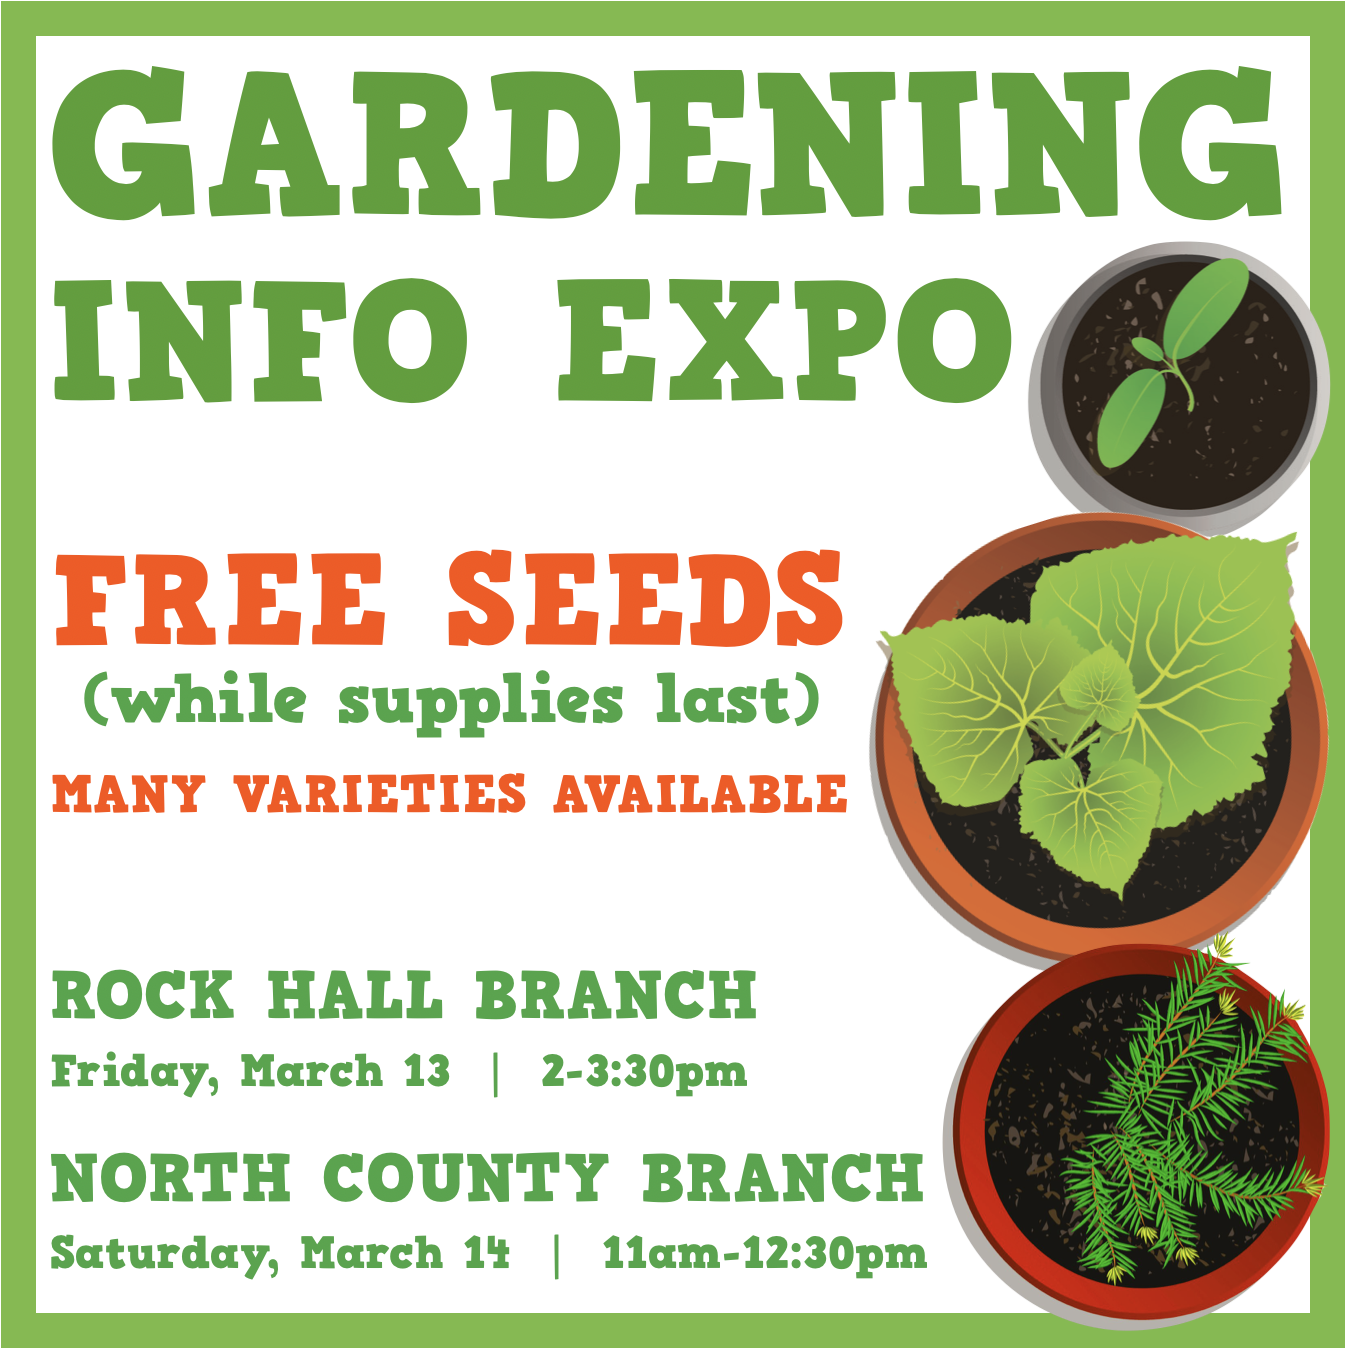 Gardening Info Expo and Seed Giveaway